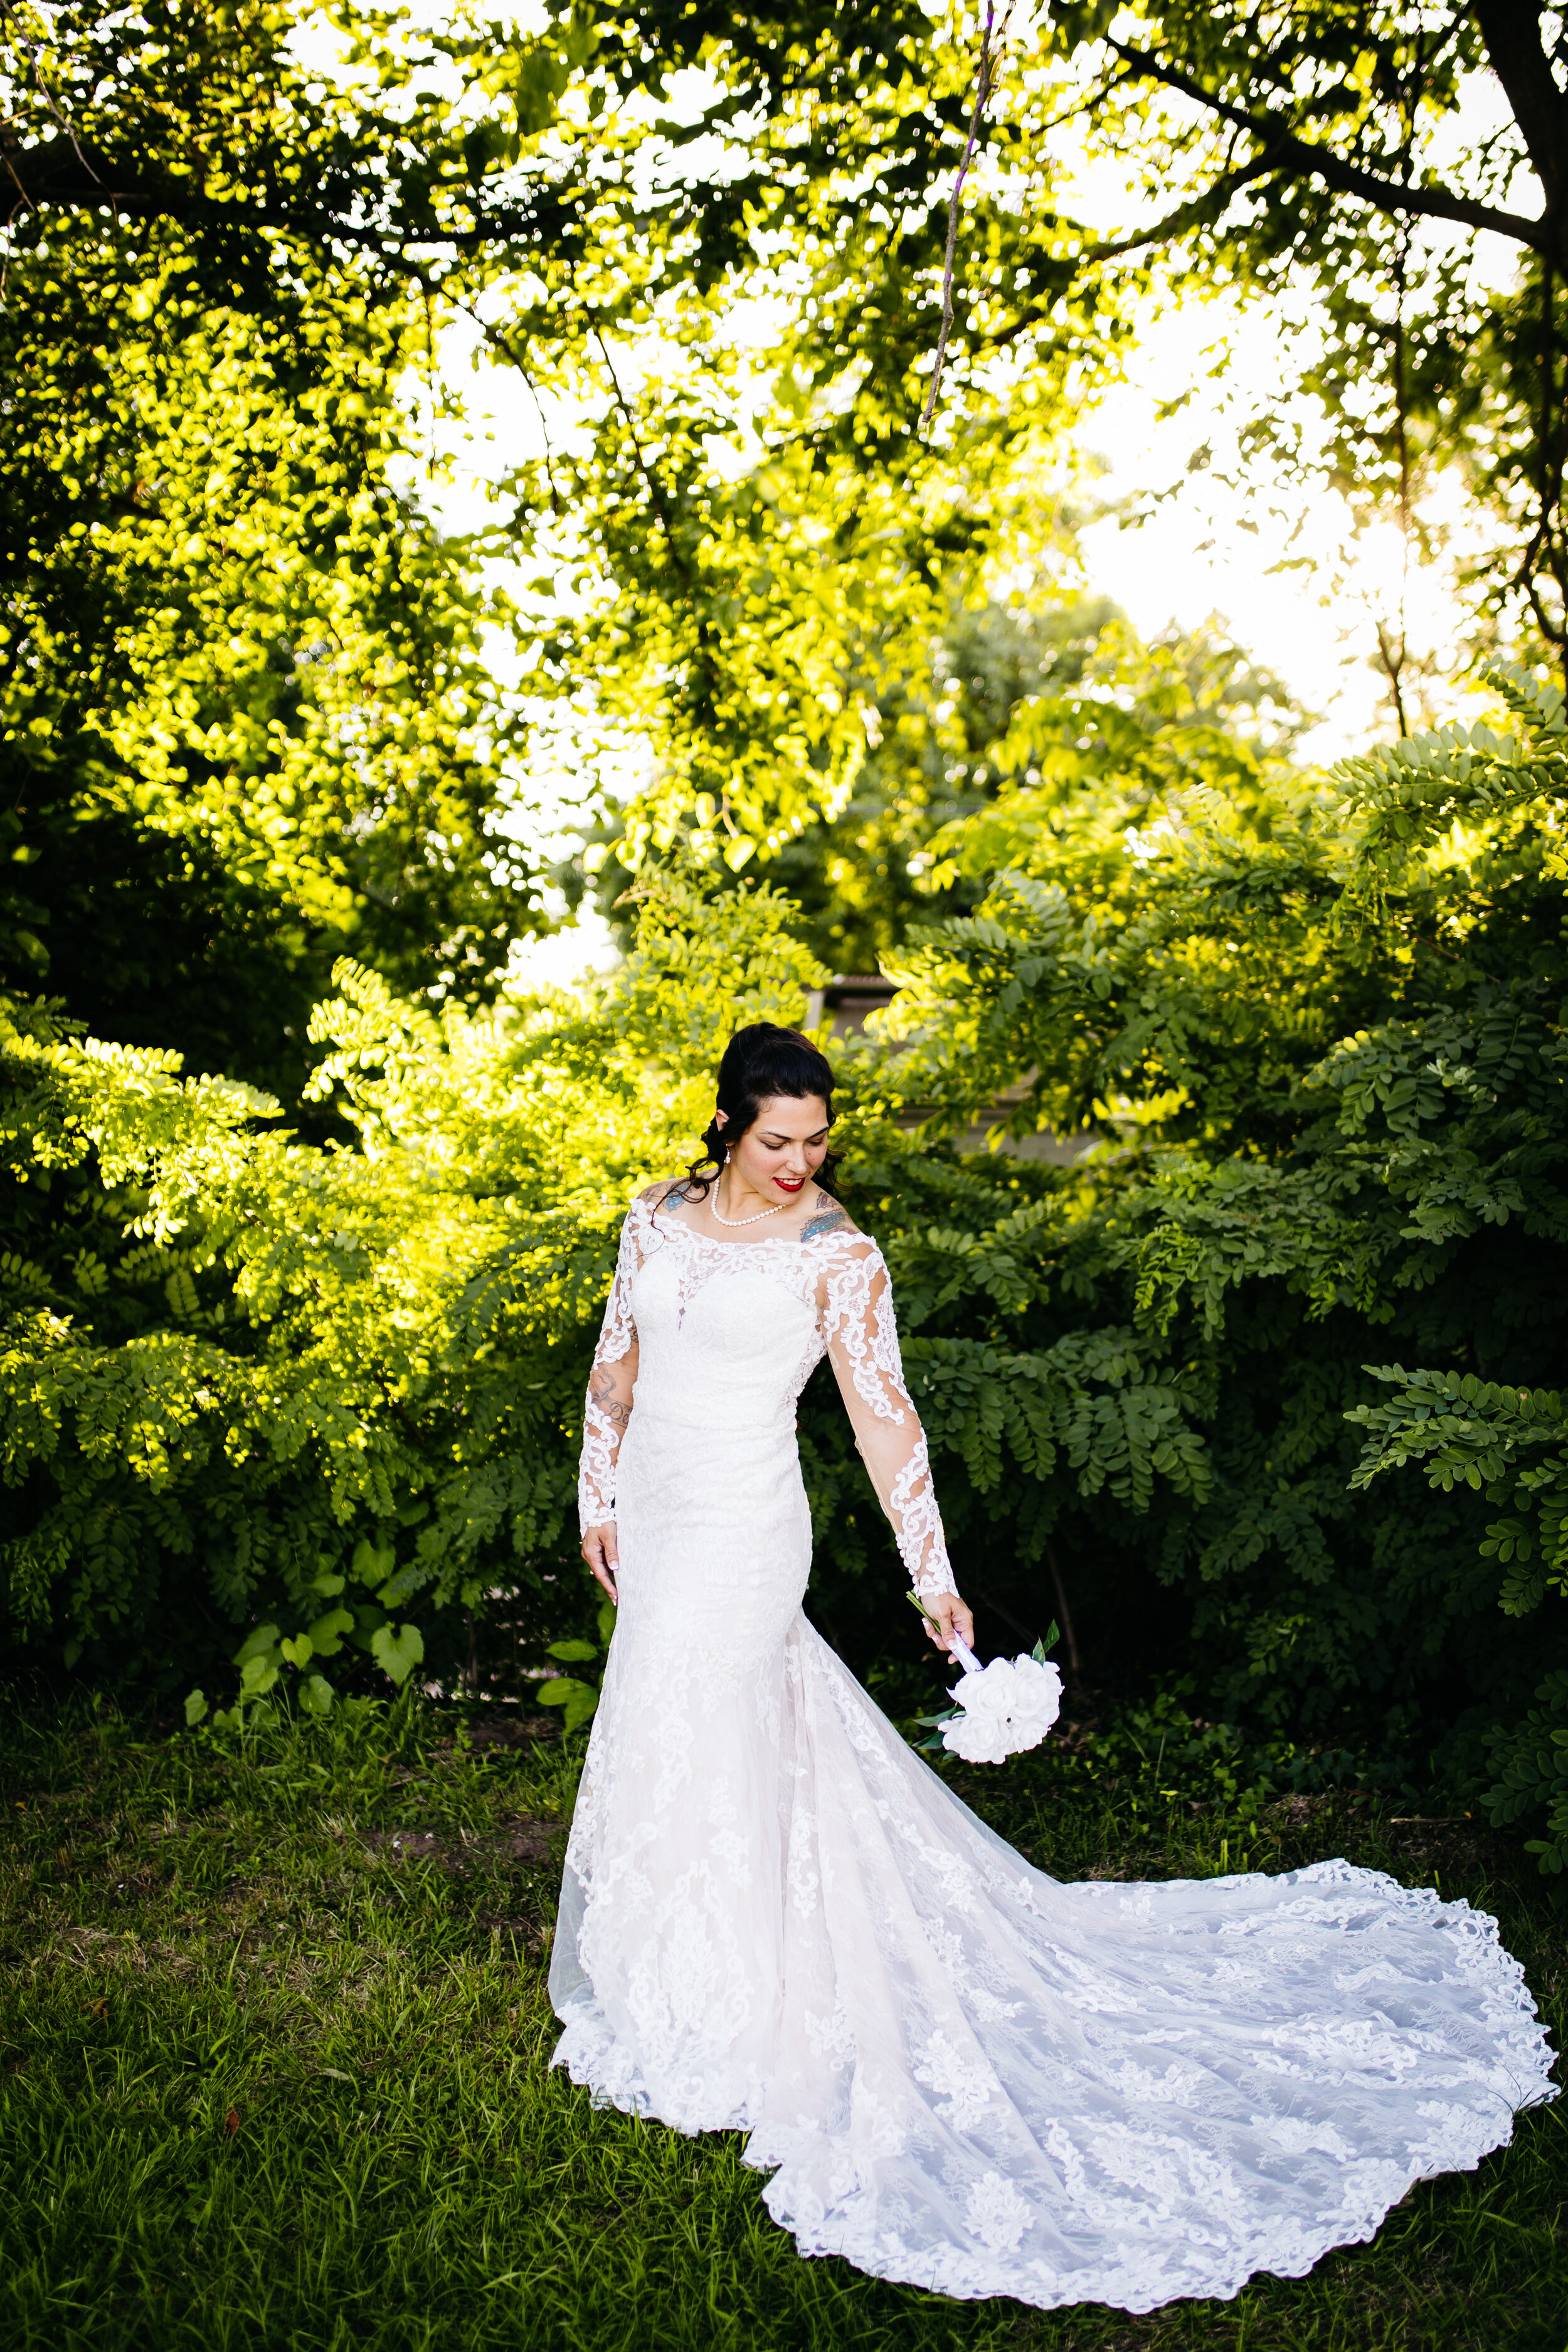 Raina // July 2019 //  Anne Marie's Photo & Video  //  River Chase Weddings & Events